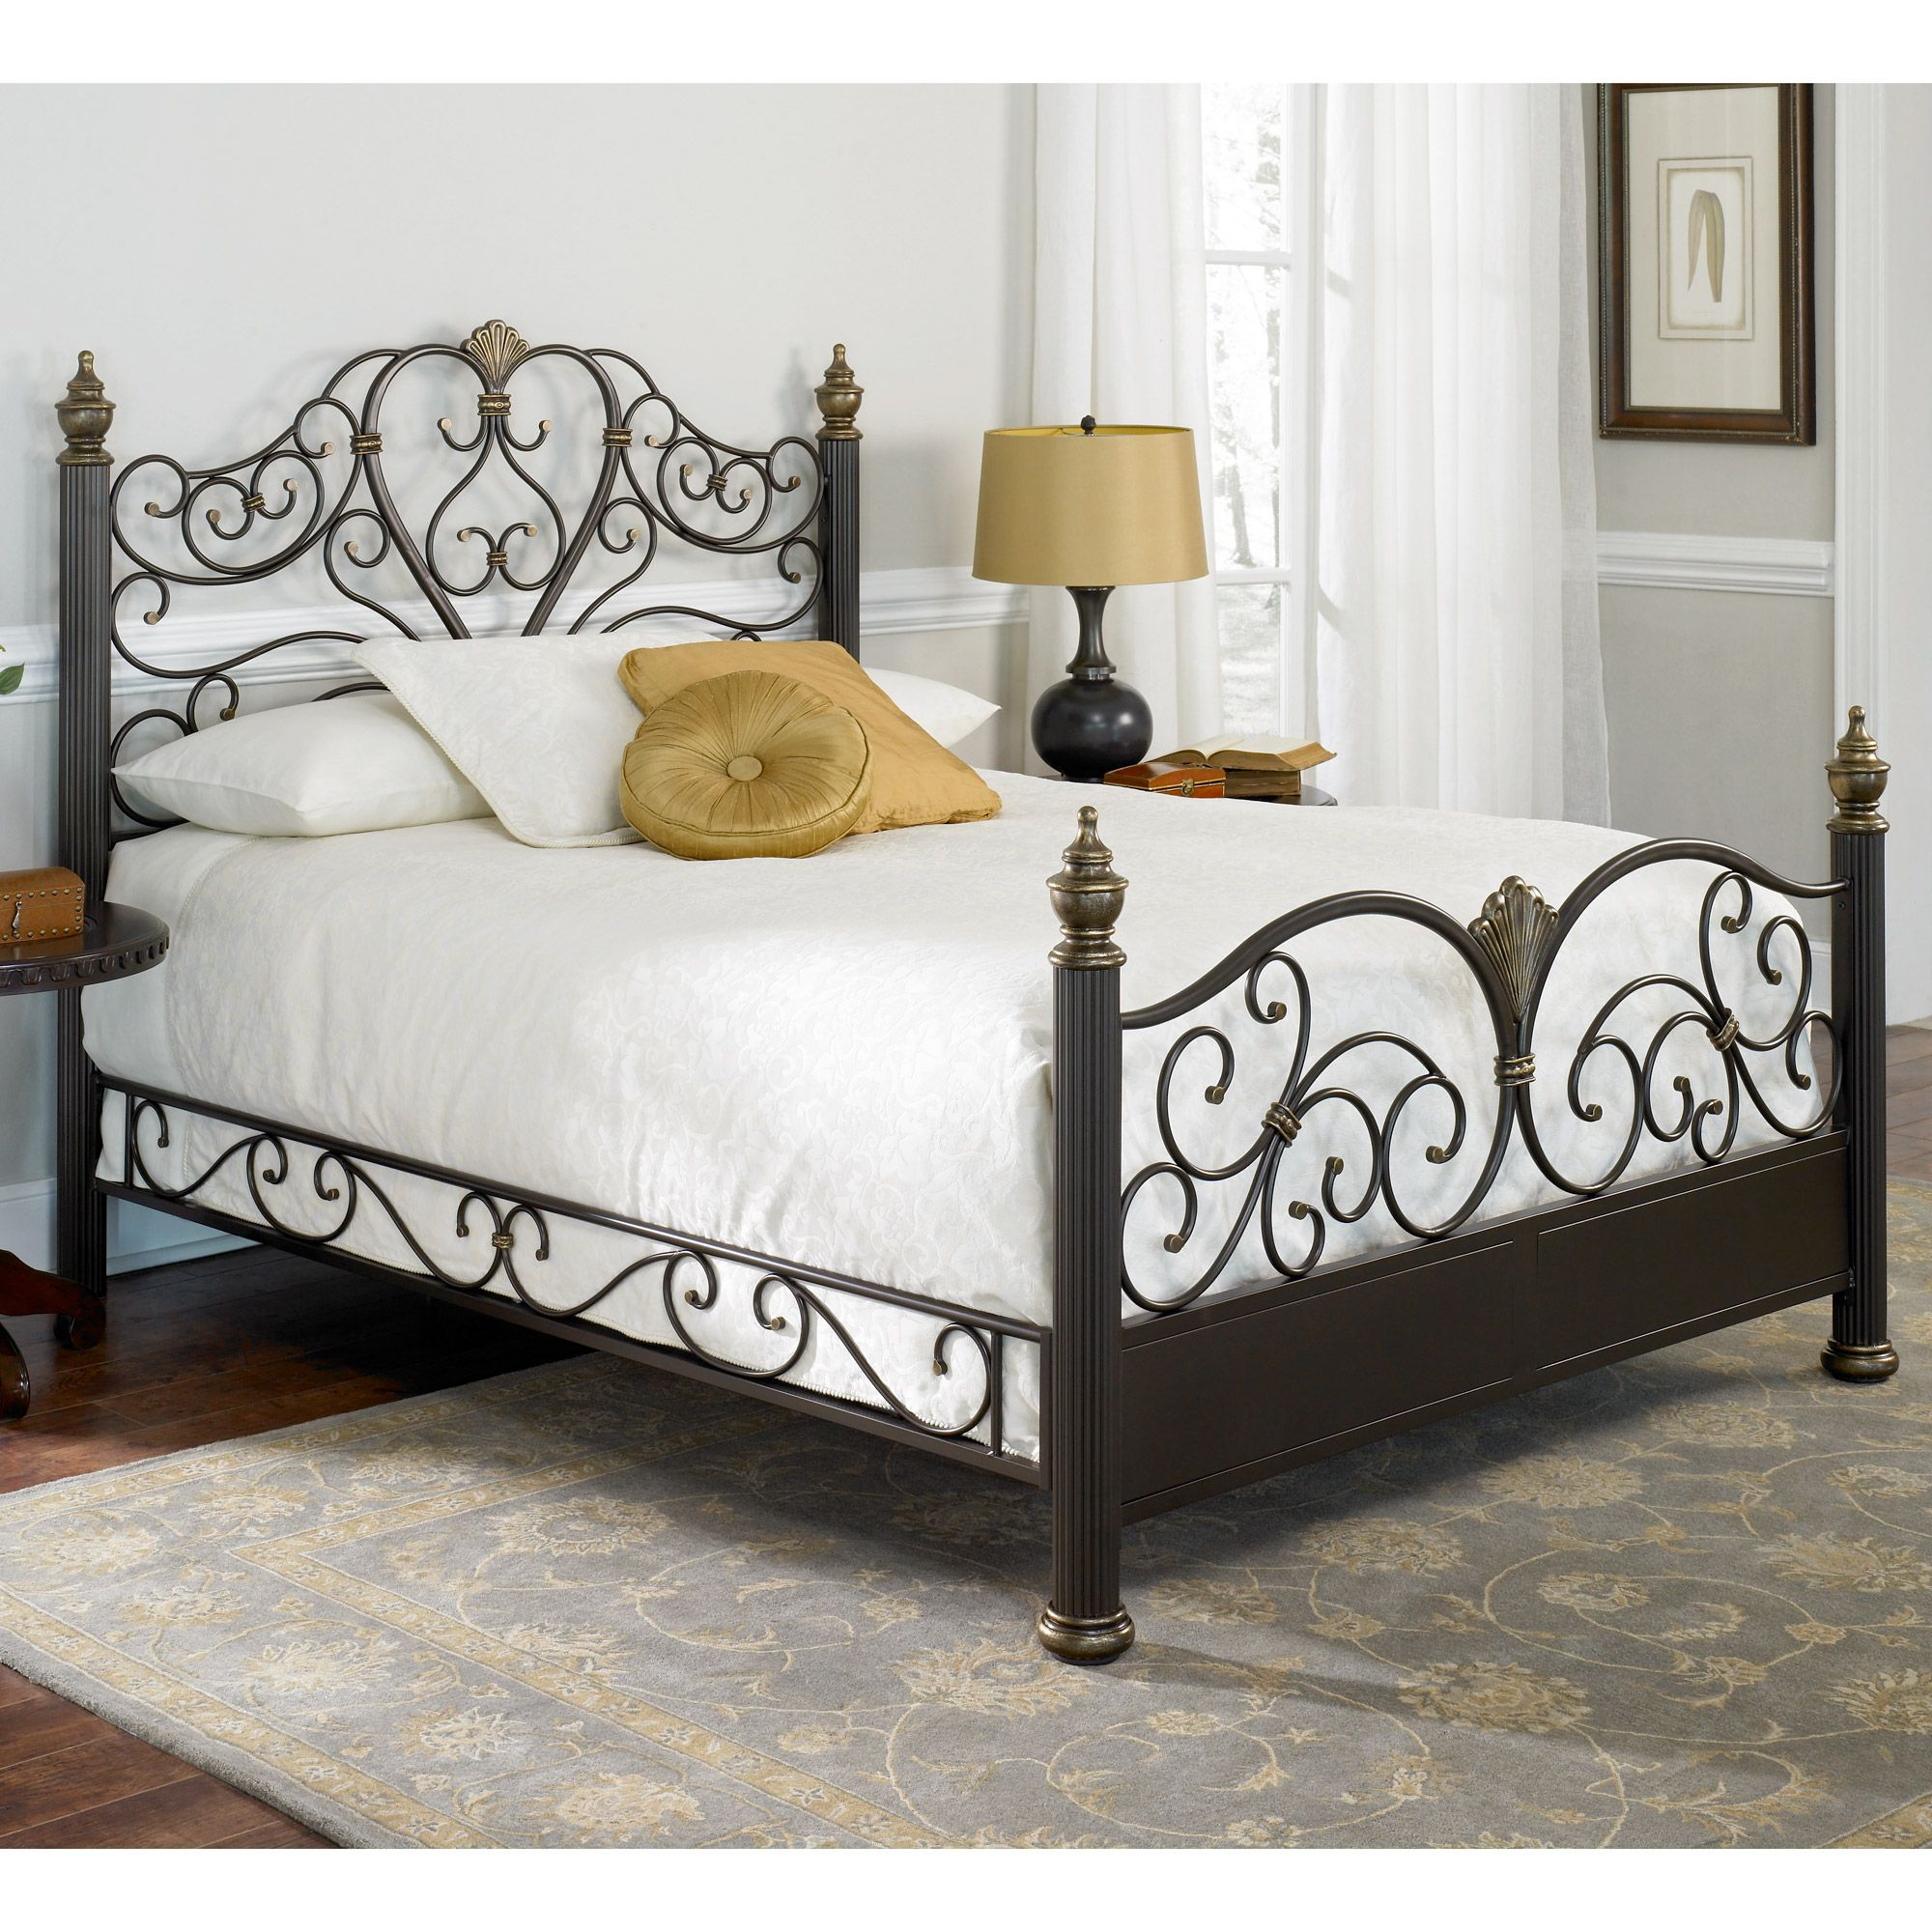 Elegance iron bed iron and metal beds for Iron furniture